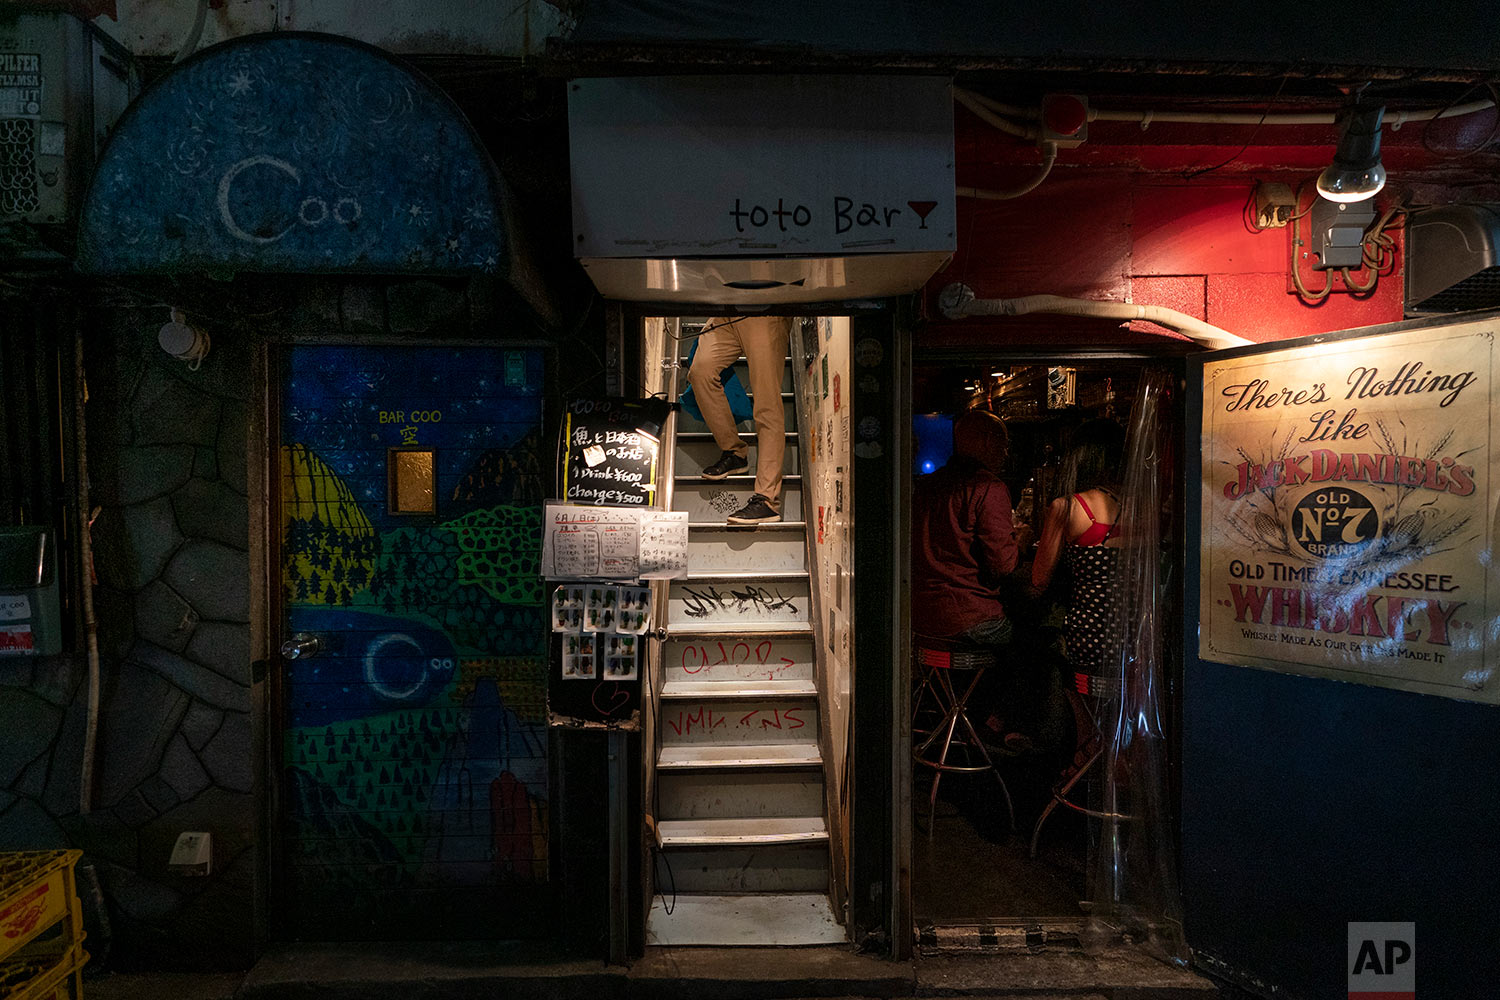 A man pauses briefly while walking down a narrow staircase of a bar in Golden Gai, in Tokyo, June 1, 2019. (AP Photo/Jae C. Hong)